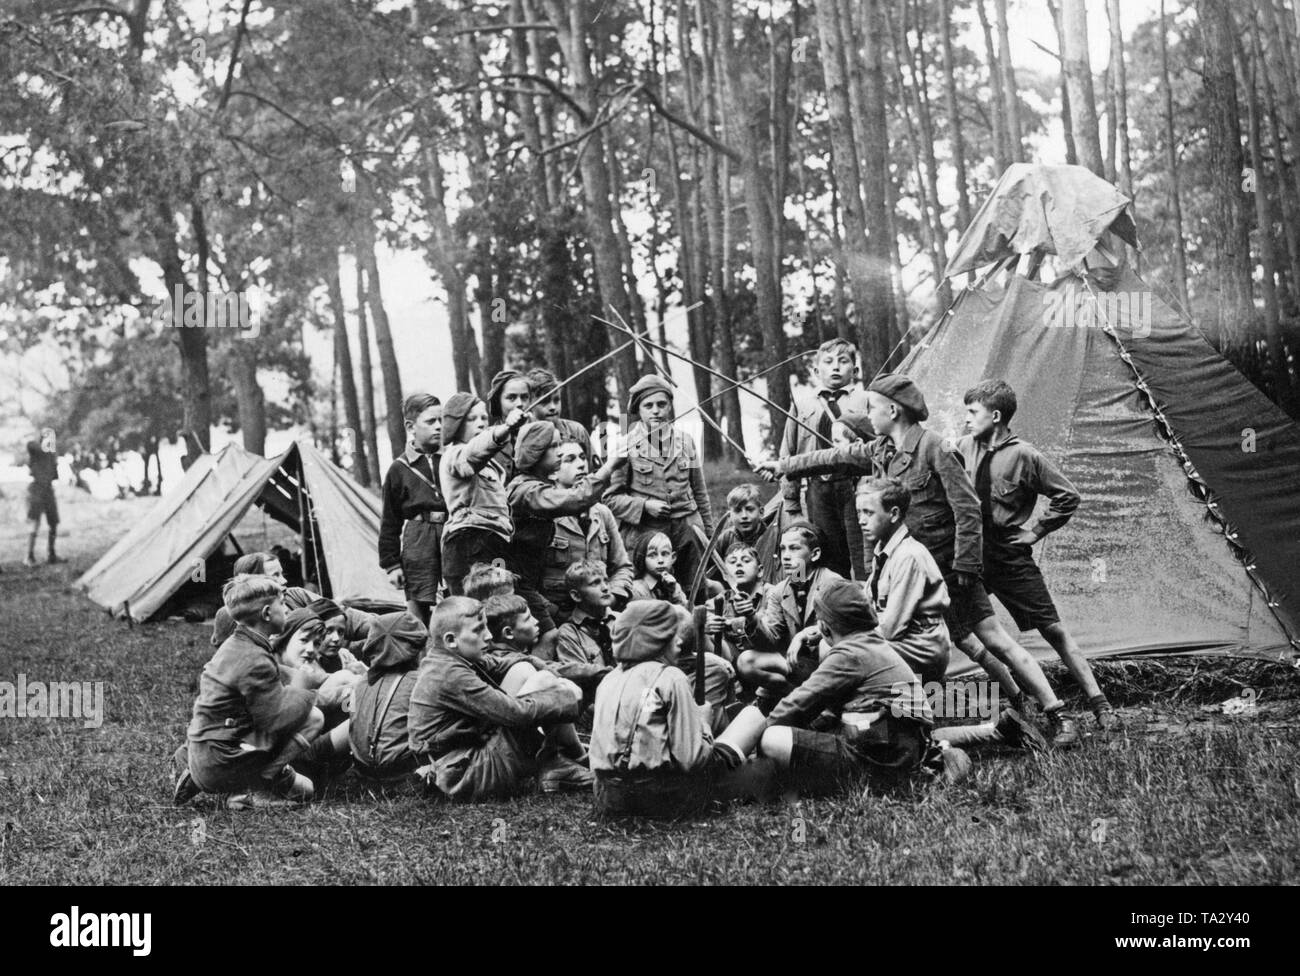 Boys sit together in a tent camp and fight playfully with sticks. - Stock Image